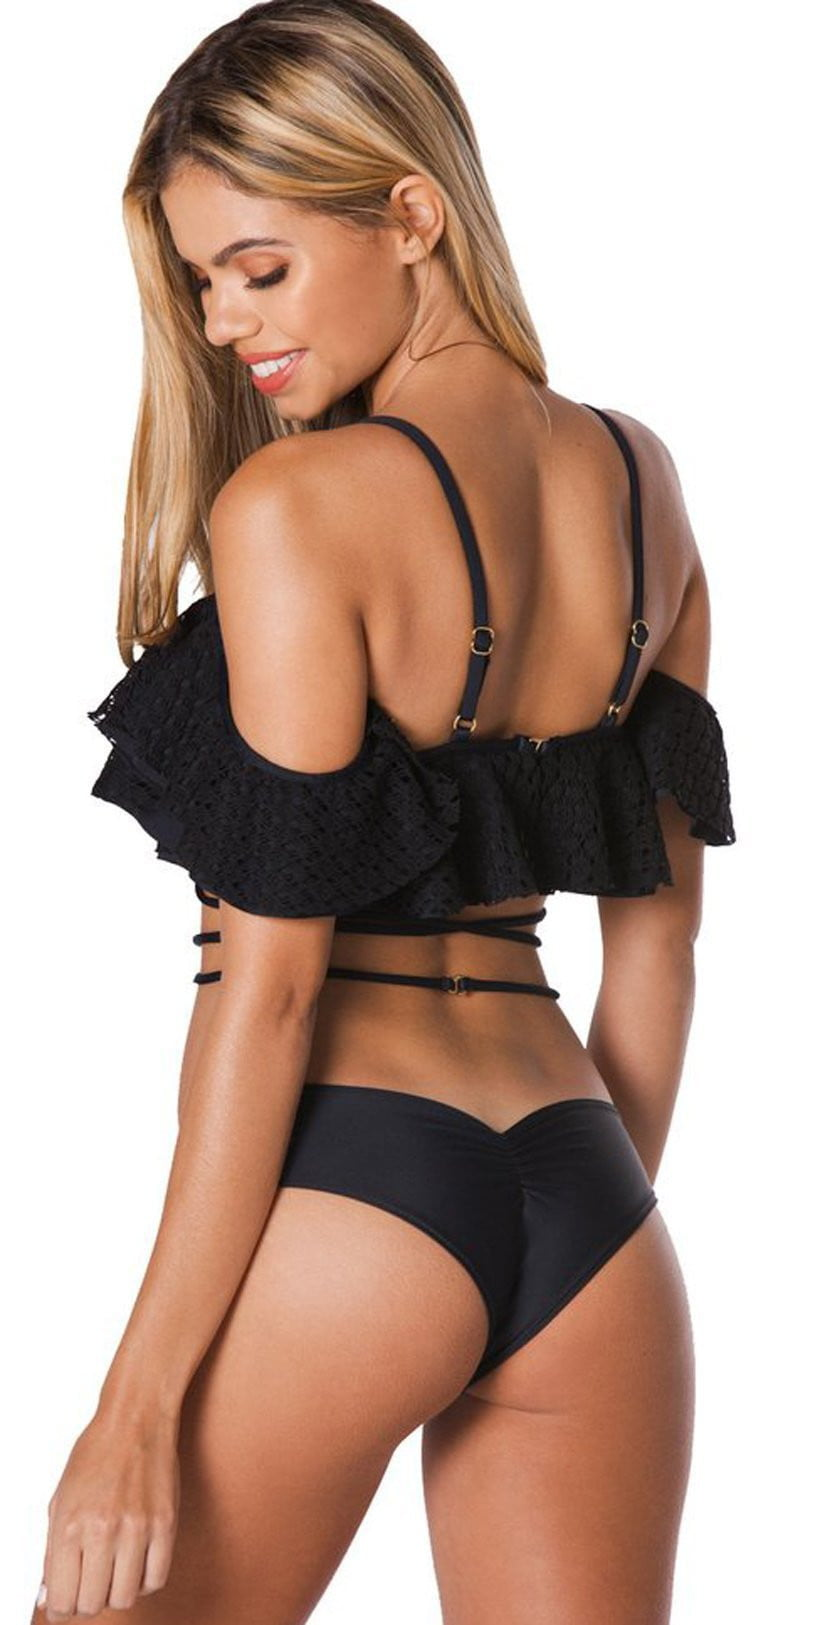 Montce Palmilla La Caletta Top in Black: